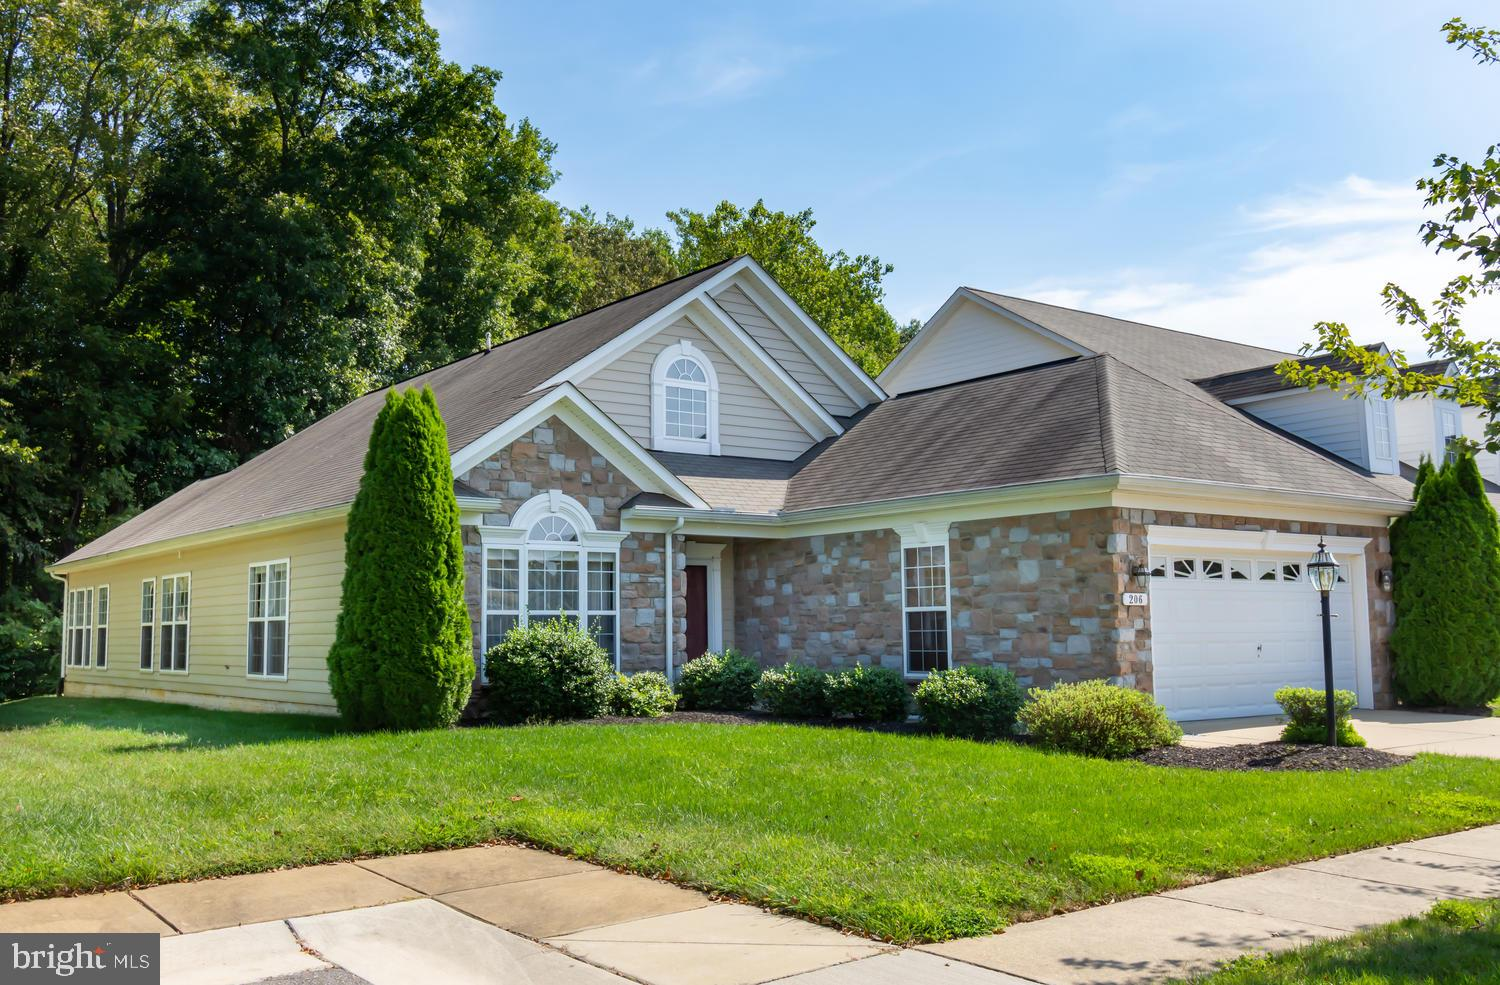 206 OPERA Ct, Centreville, MD, 21617